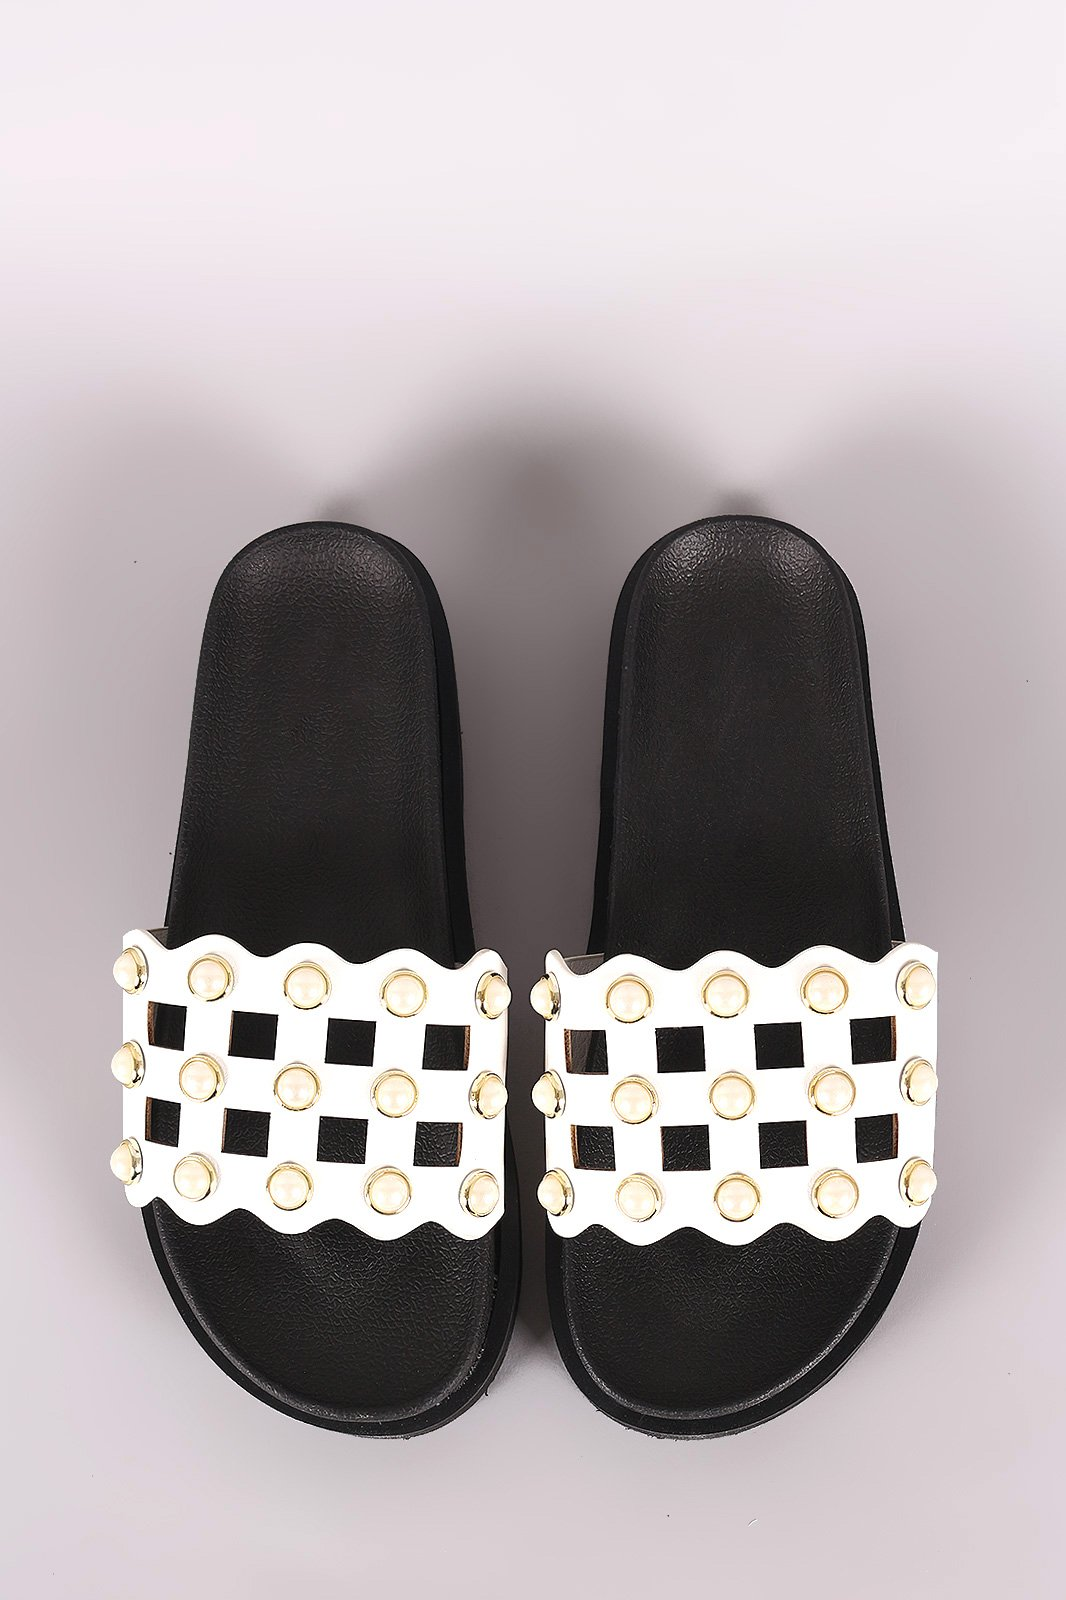 a7e6389a6b8d28 These slide sandals feature a cutout grid design vamp with faux pearls  accent